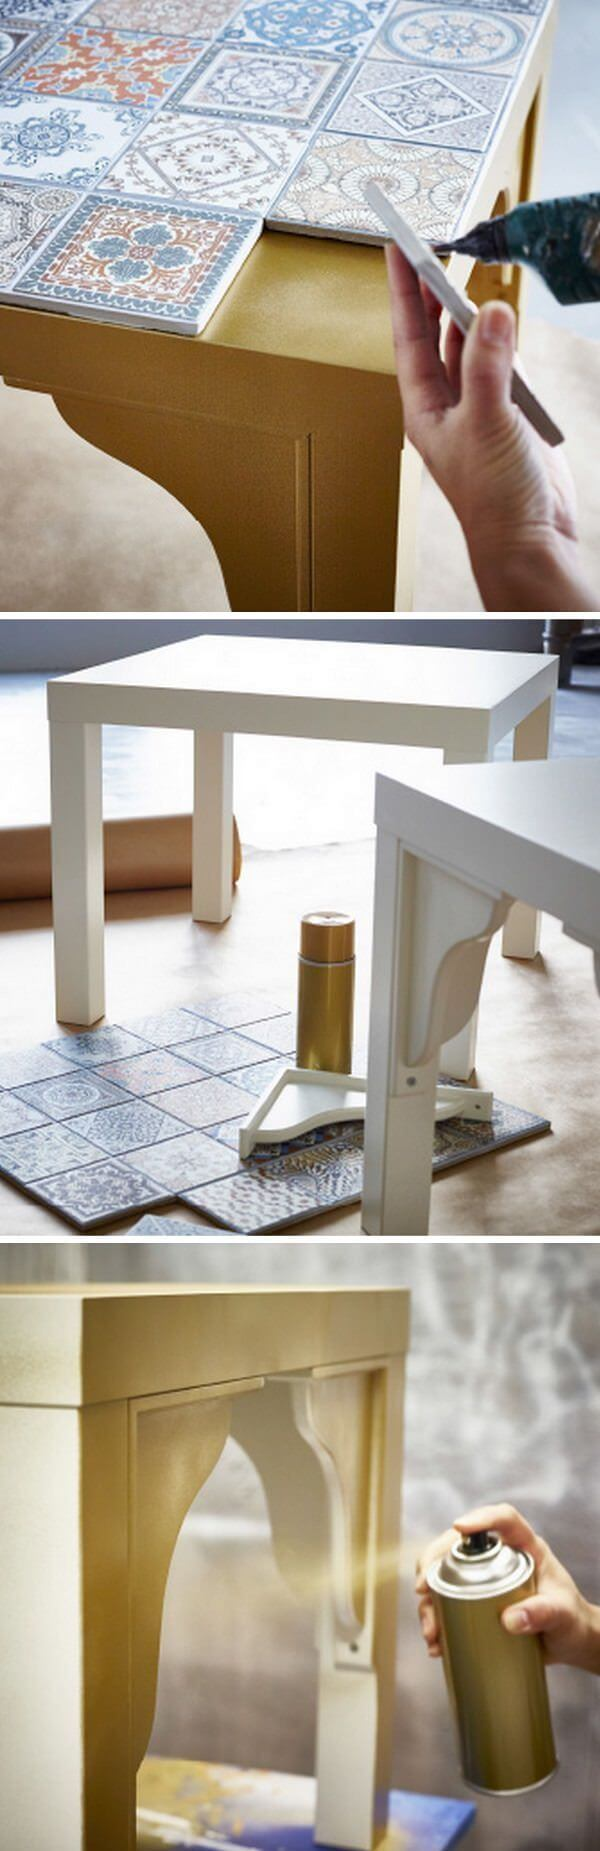 Make a Beautiful Table with Mosaics